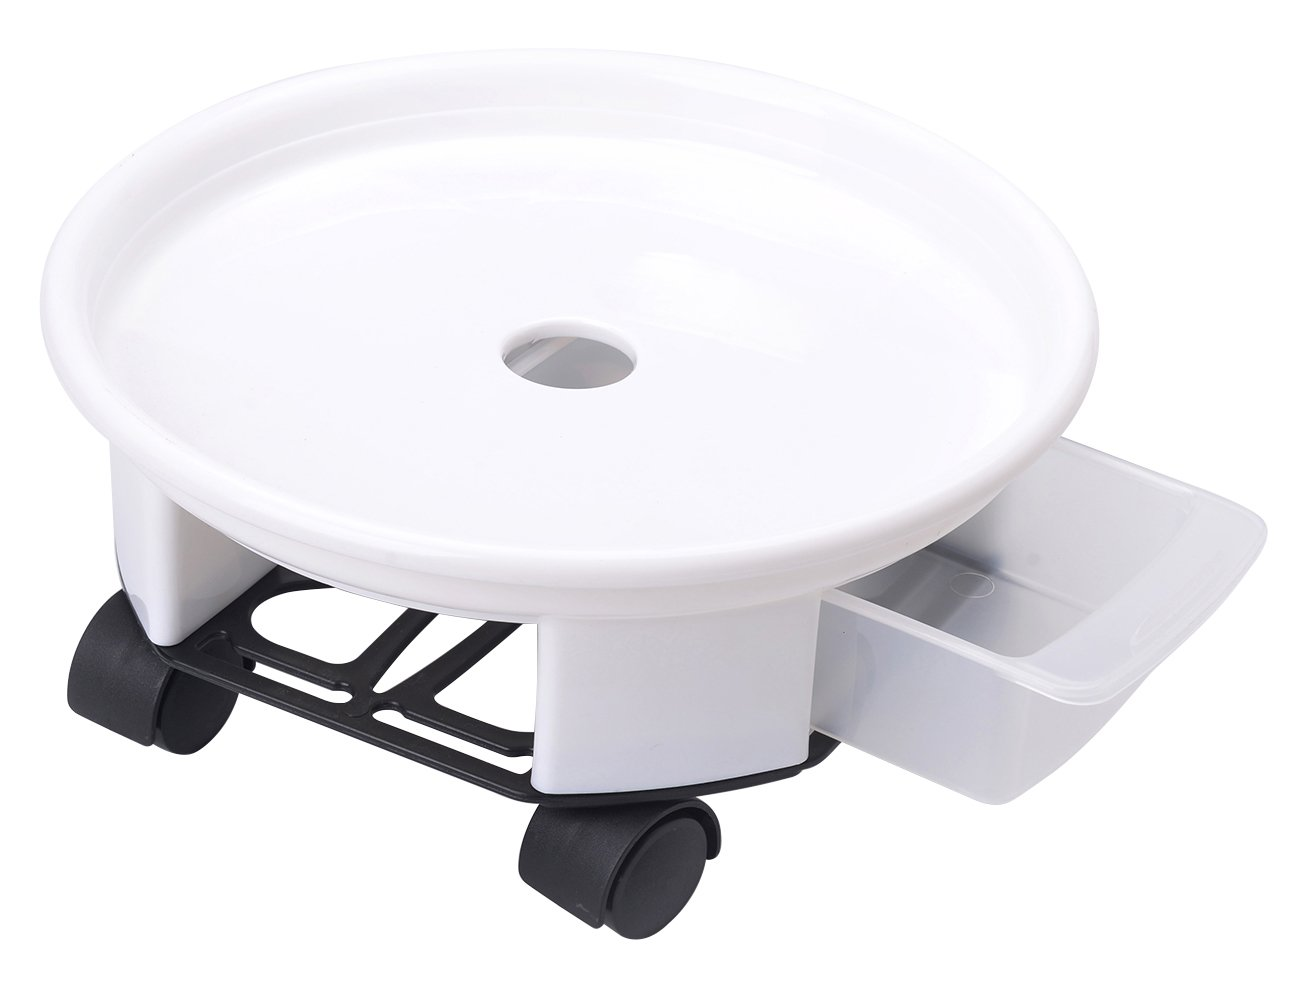 15'' Plant Caddy,Round Plant Dolly Trolley Saucer Moving Tray Pallet with Wheels and a Water Container,White,80 Count by Zhanwang